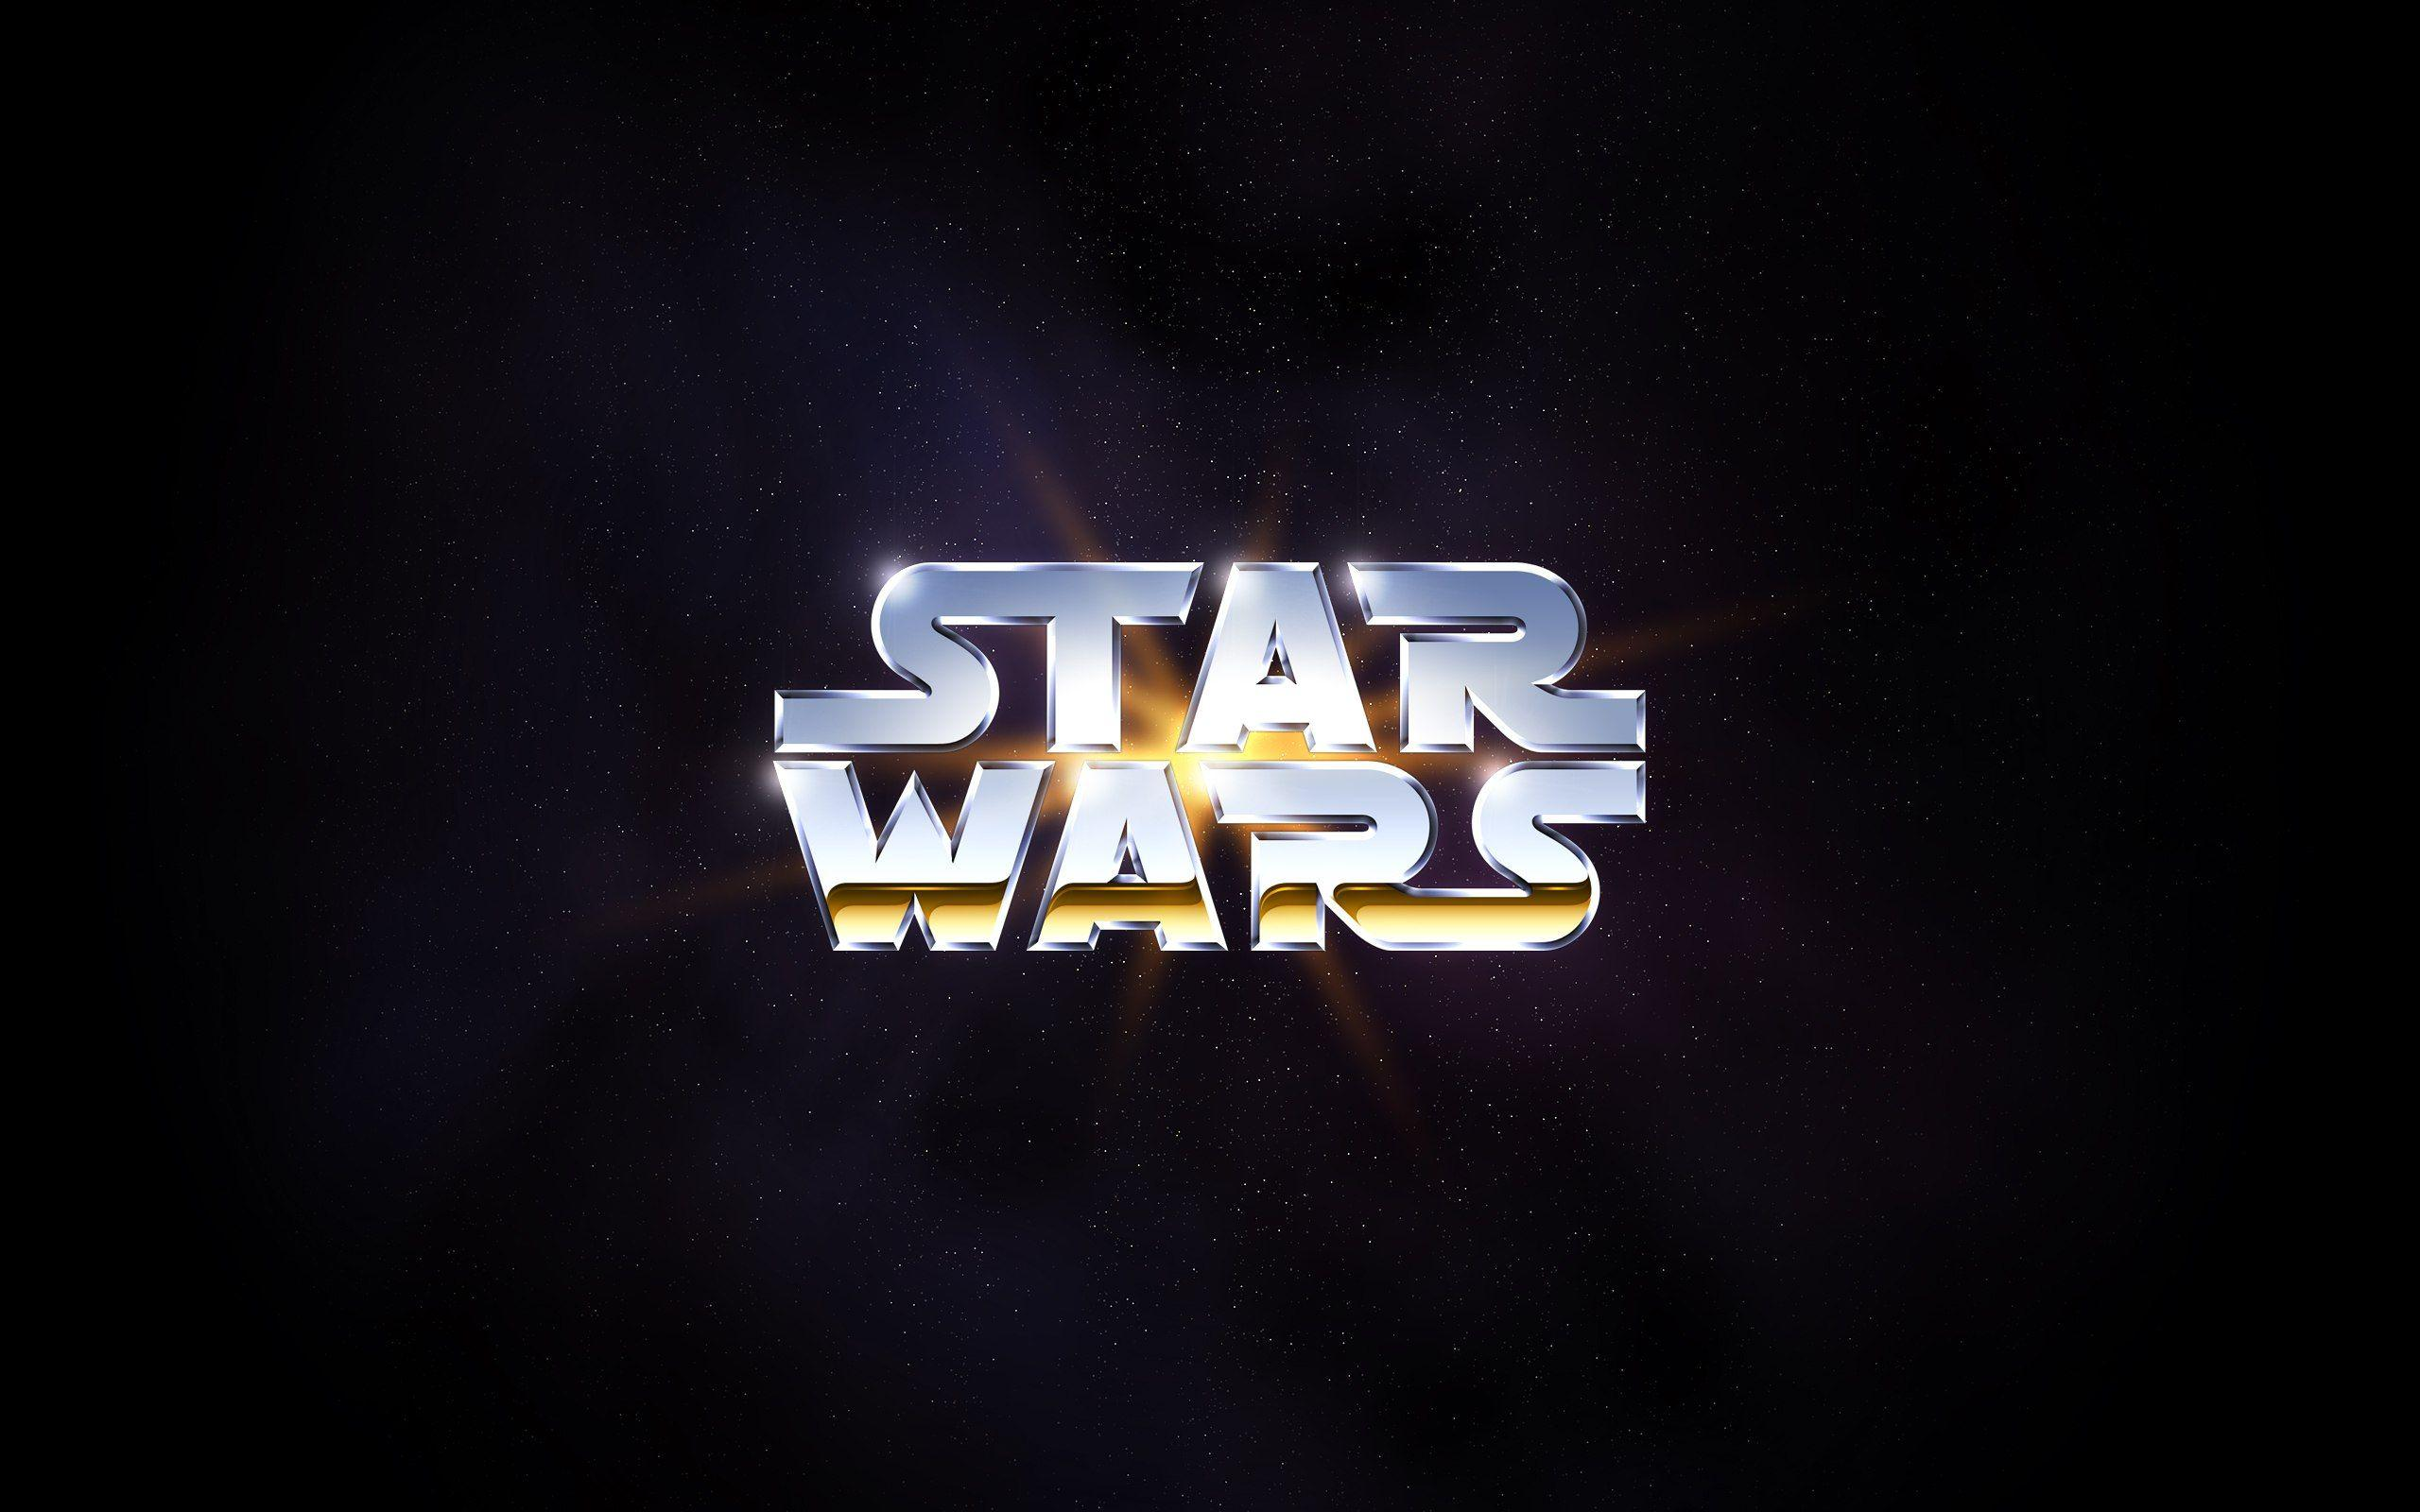 star wars logo wallpapers wallpaper cave